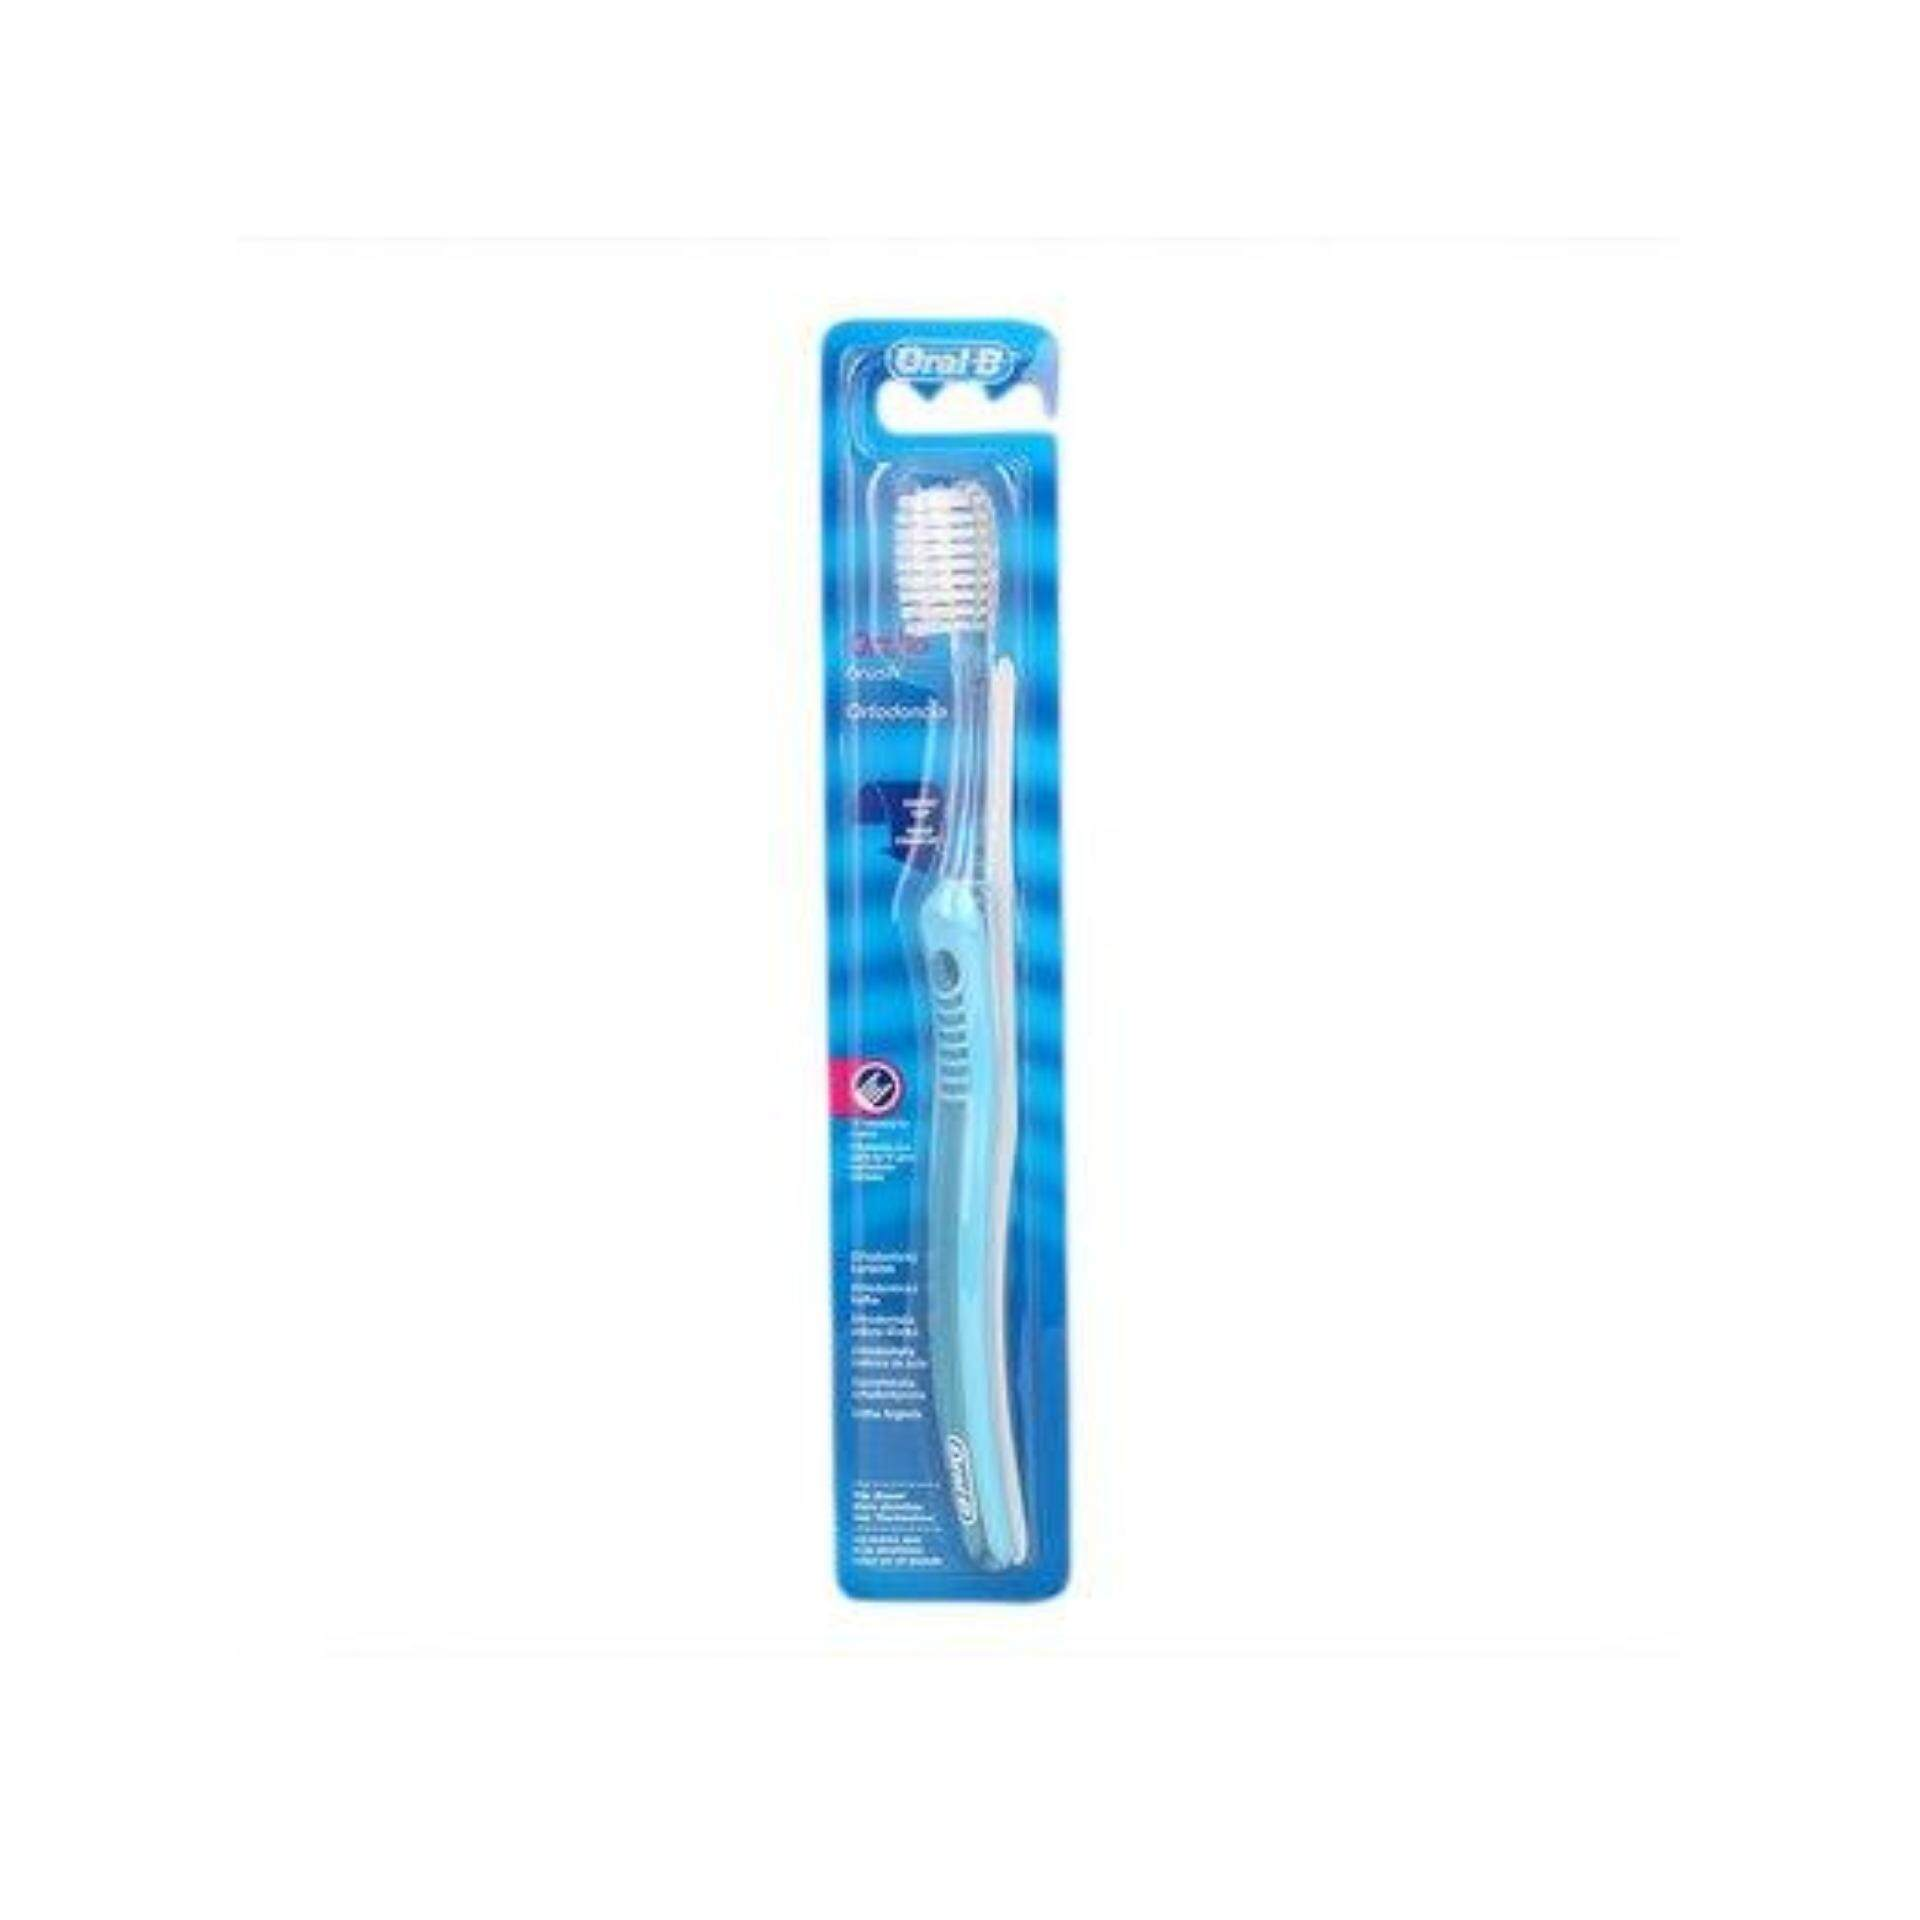 Oral B Toothbrush Braces Orthodontic Brush